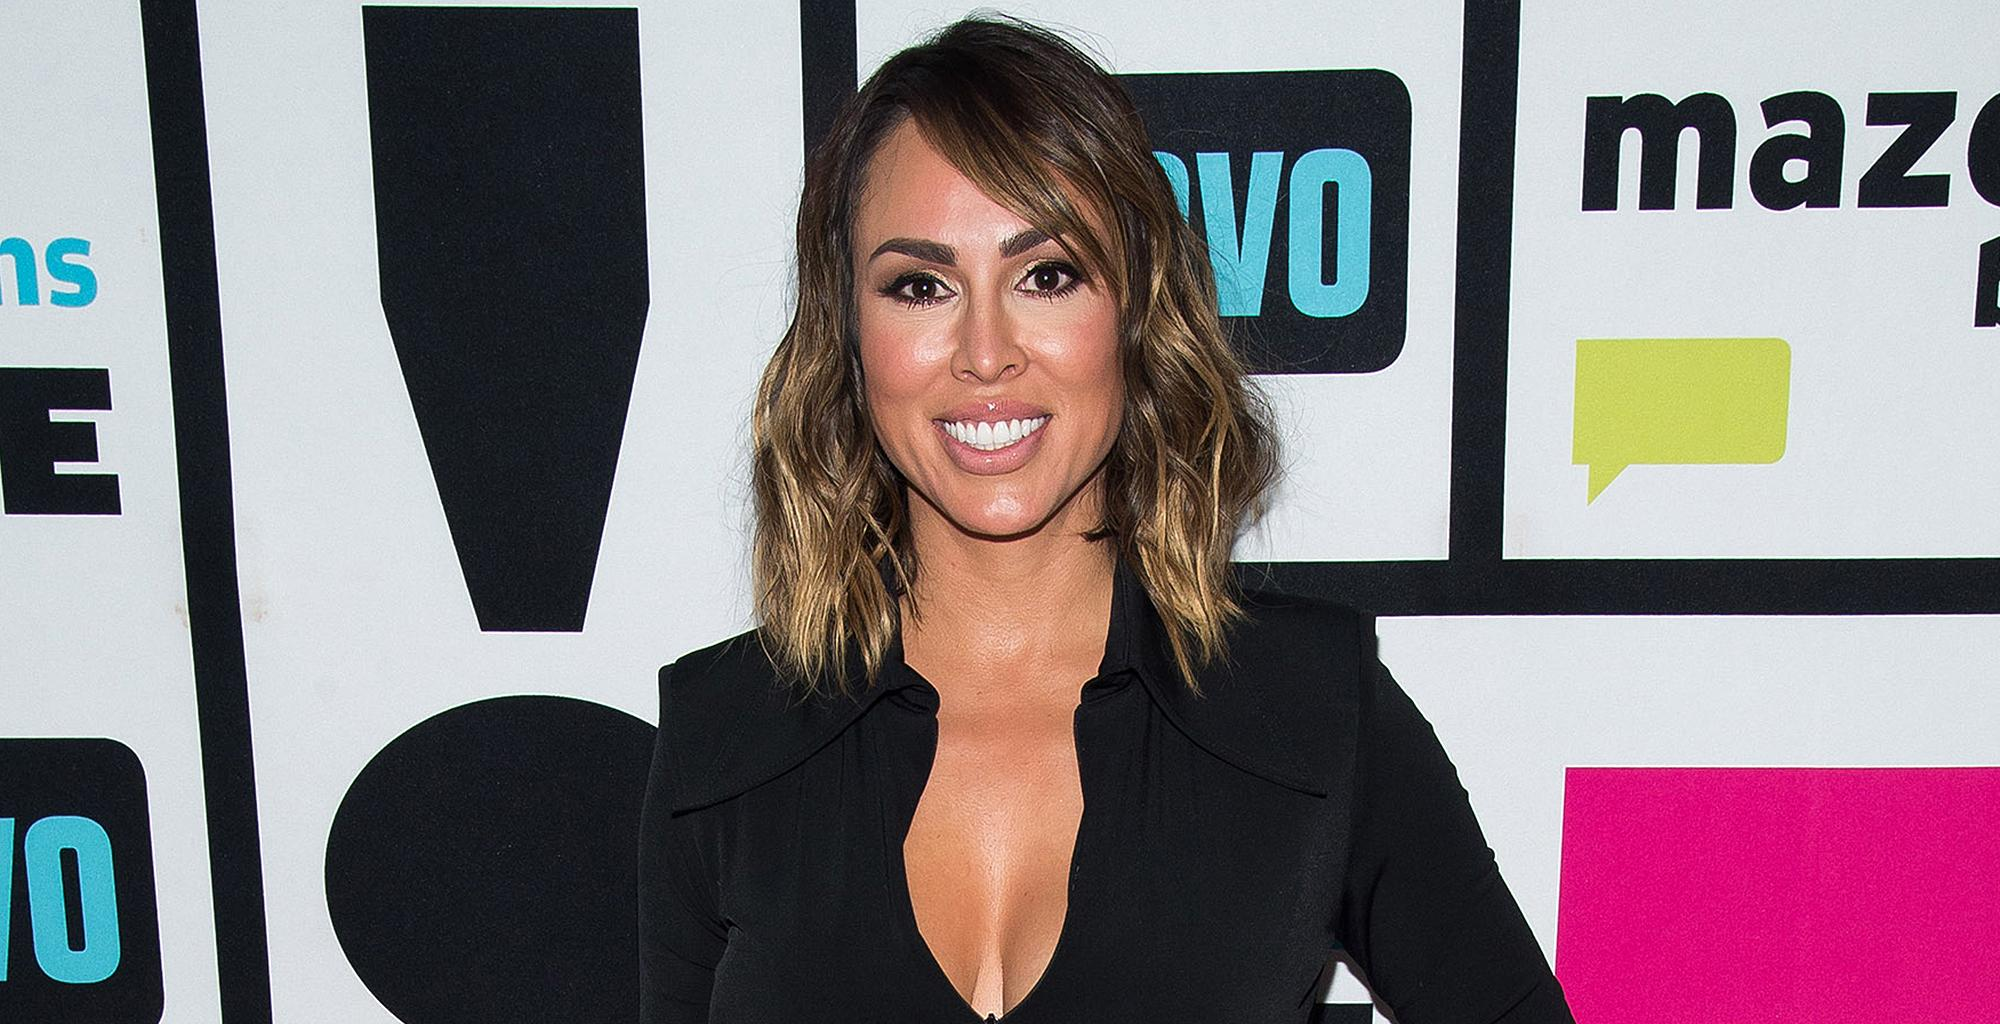 Kelly Dodd Slammed For Moving On With Rick Leventhal Just Days After Announcing Split From Dr. Brian Reagan - 'Too Fast!'